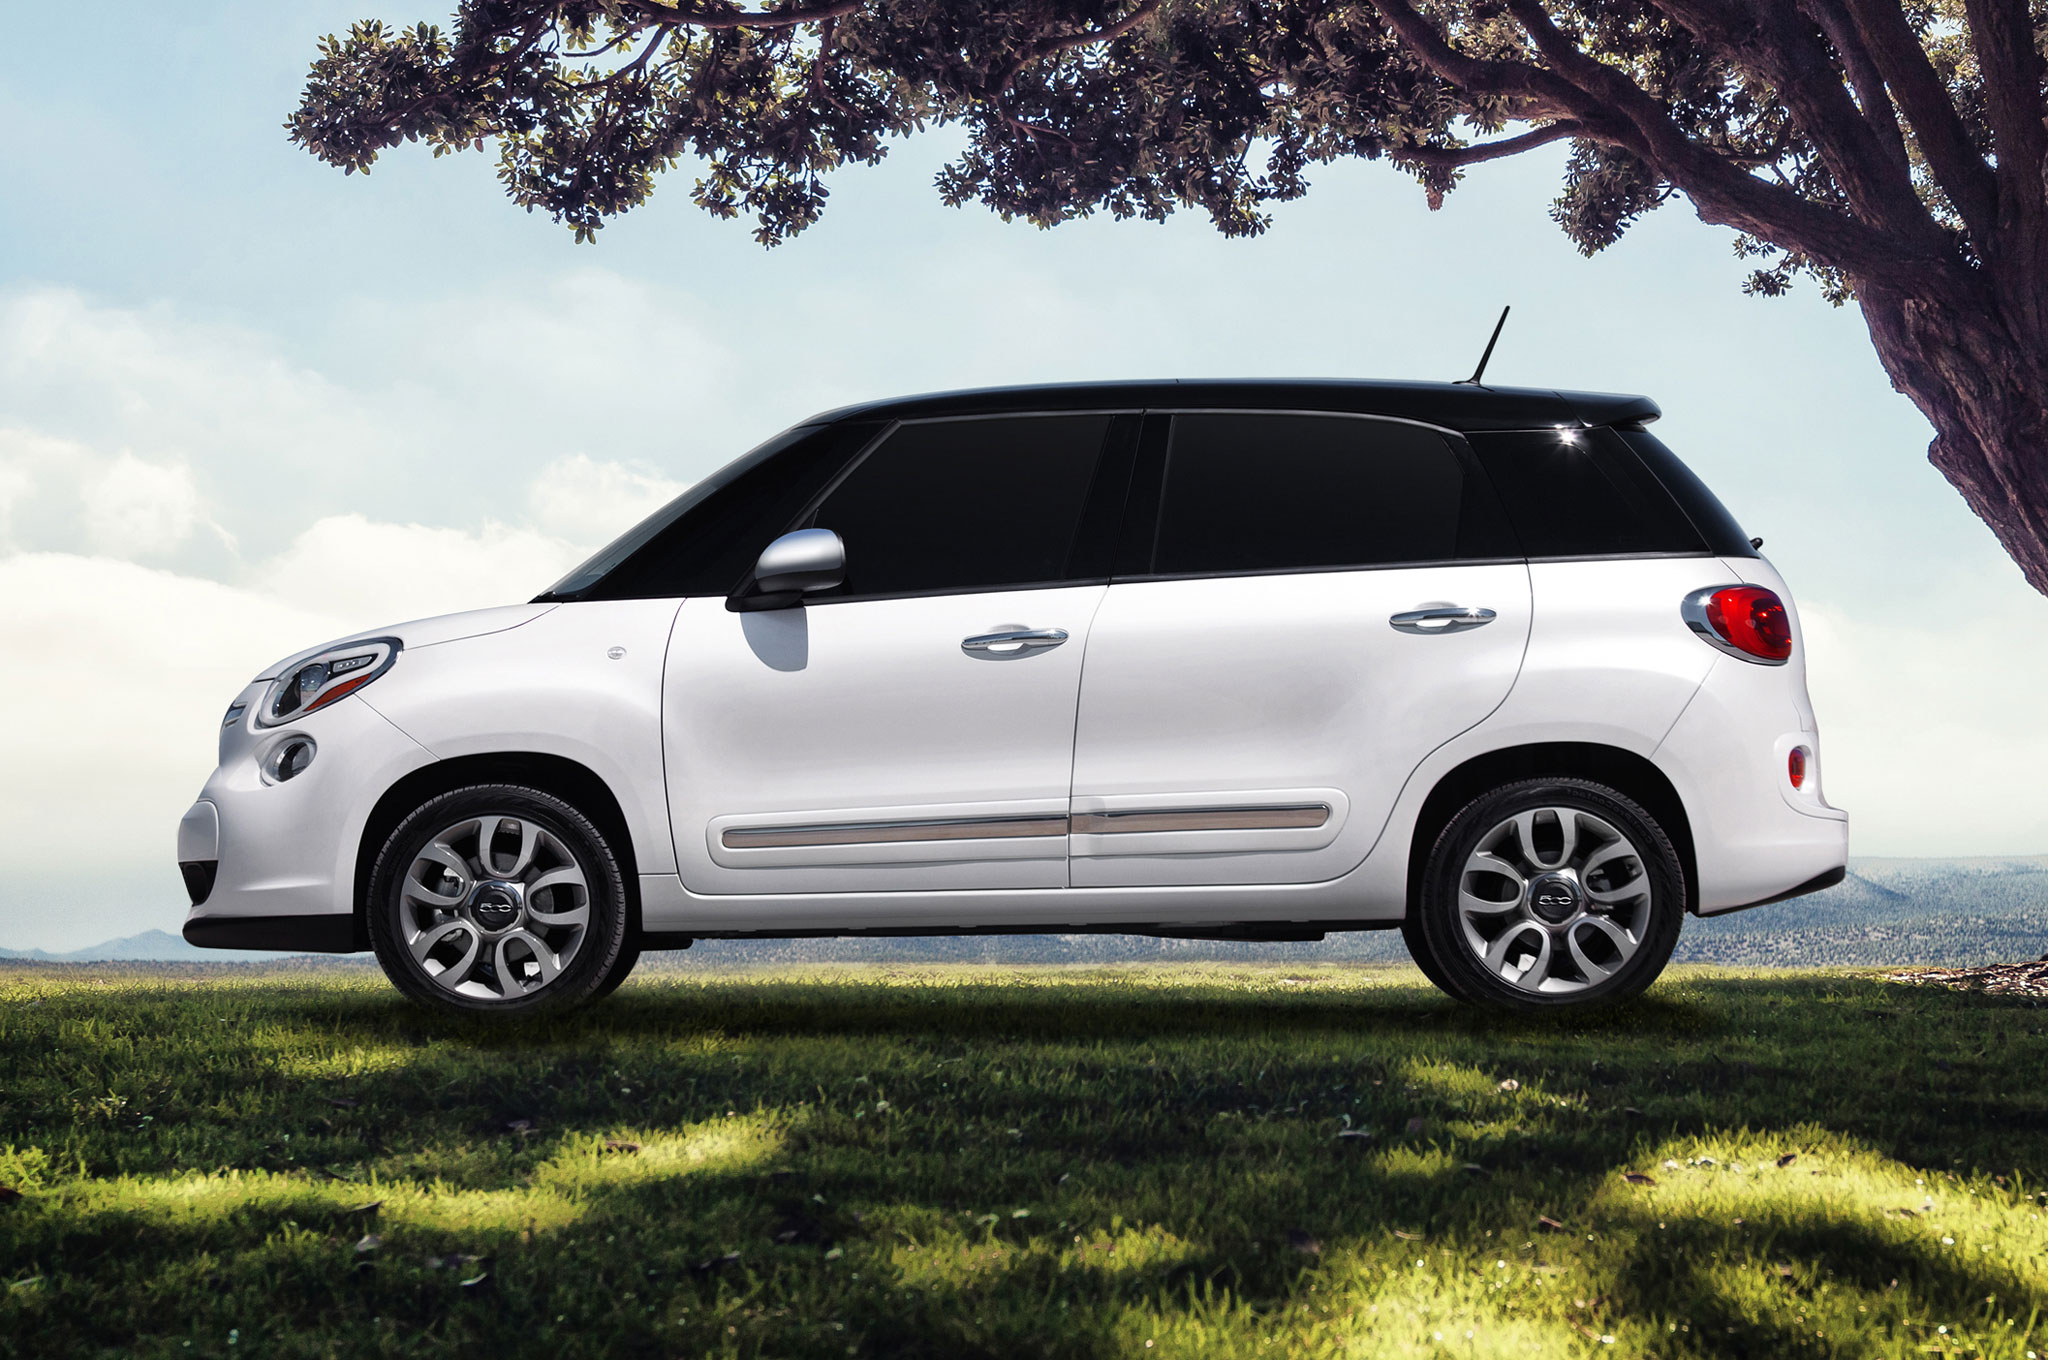 video italian family comes standard with the 2014 fiat 500l. Black Bedroom Furniture Sets. Home Design Ideas